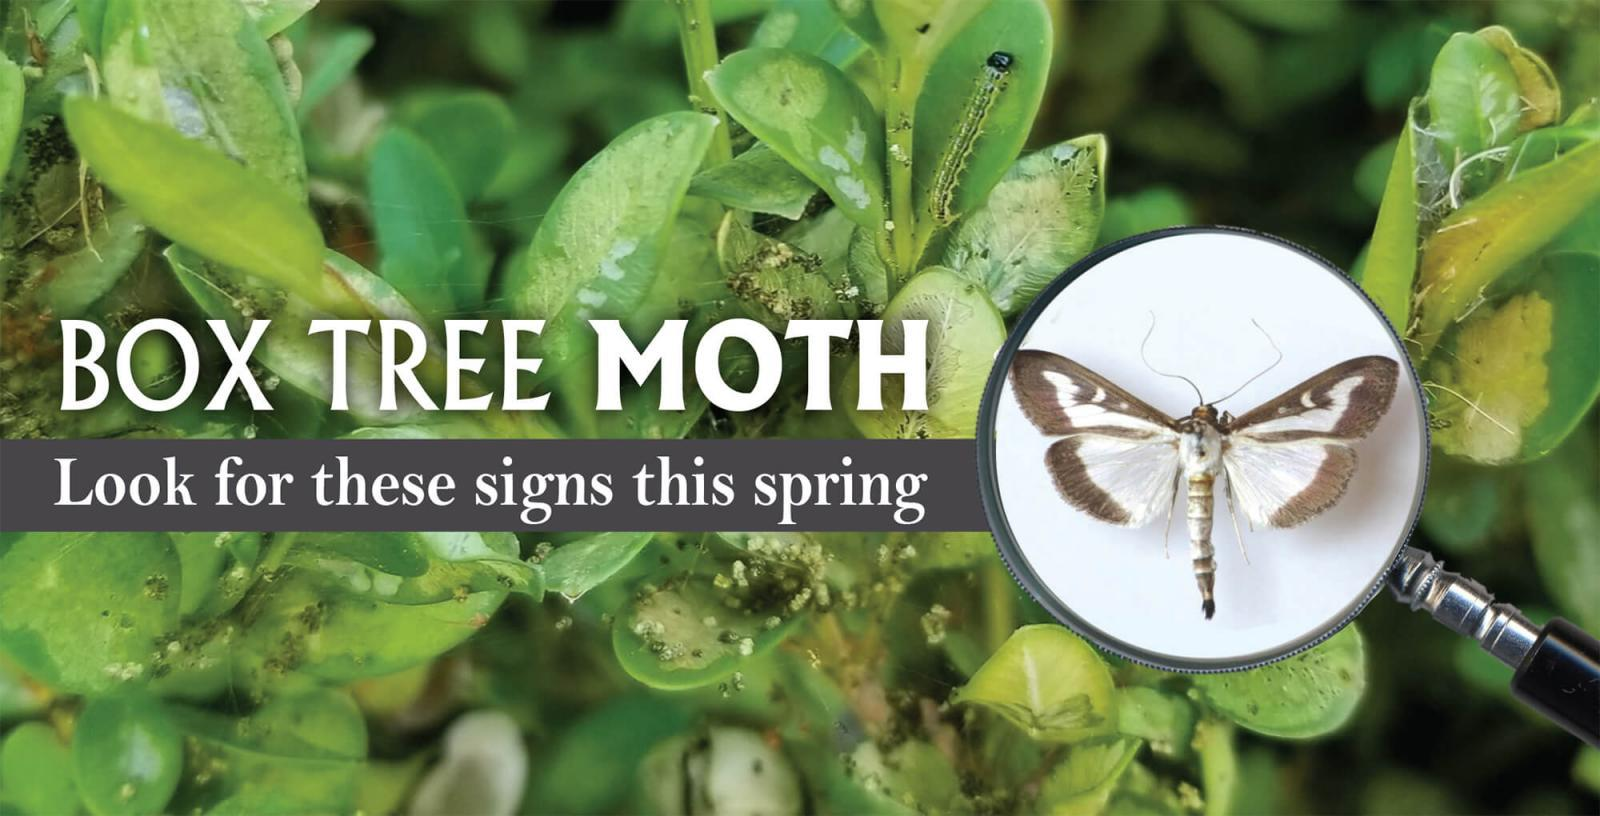 Box tree moth: Look for these signs this spring